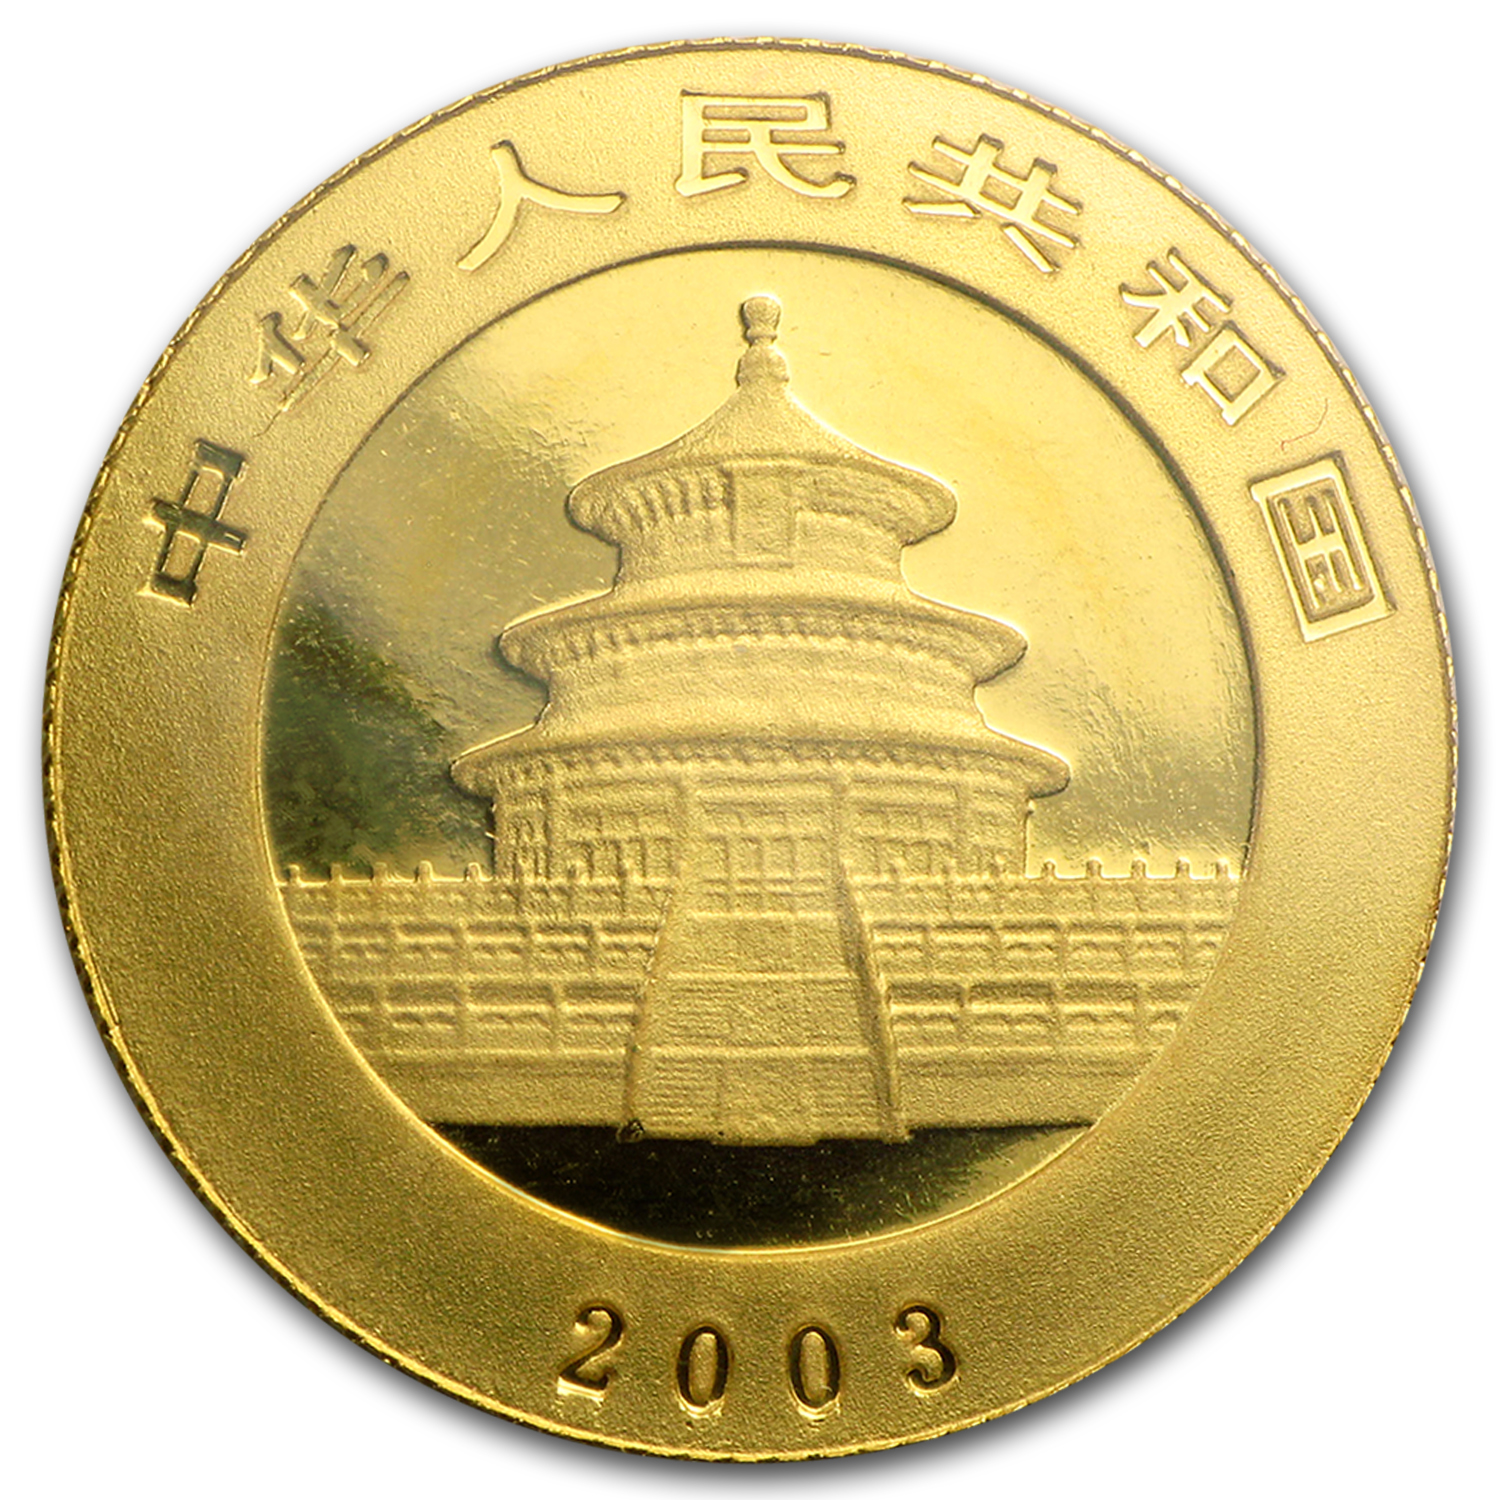 2003 China 1/10 oz Gold Panda BU (Sealed)